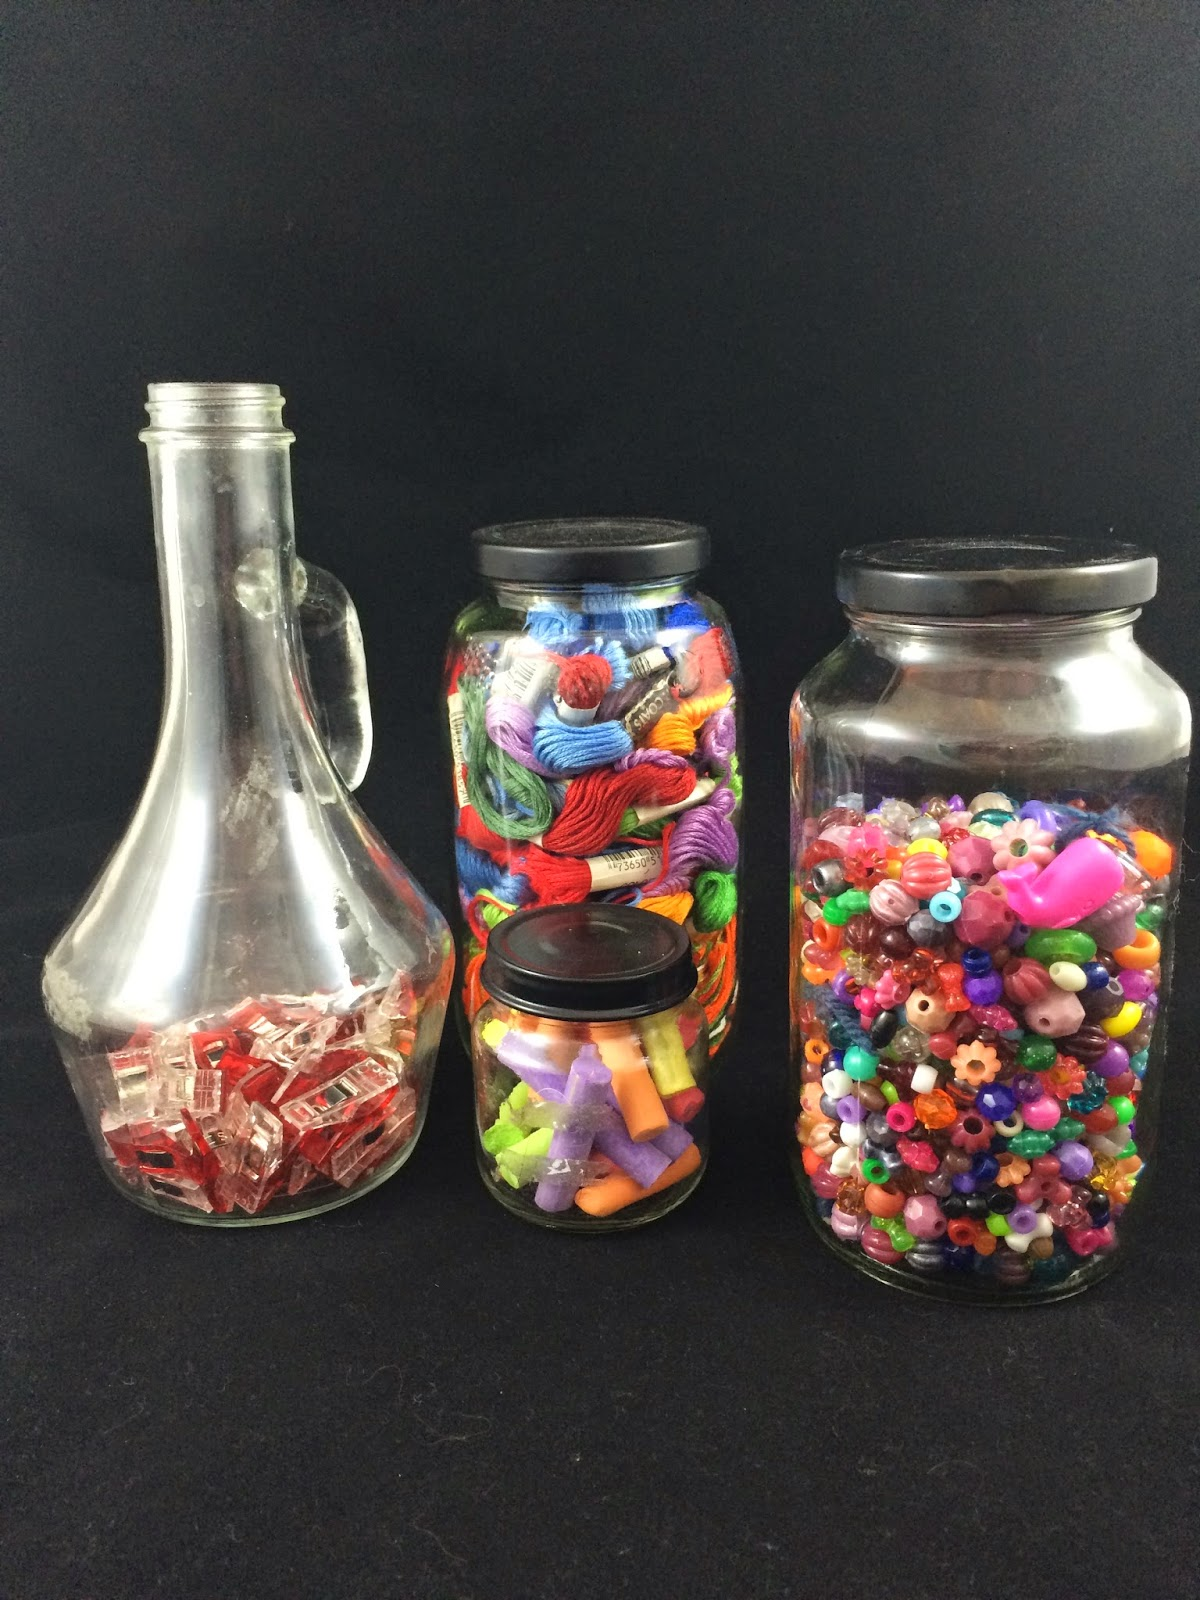 Store beads and more in upcycled glass jars.